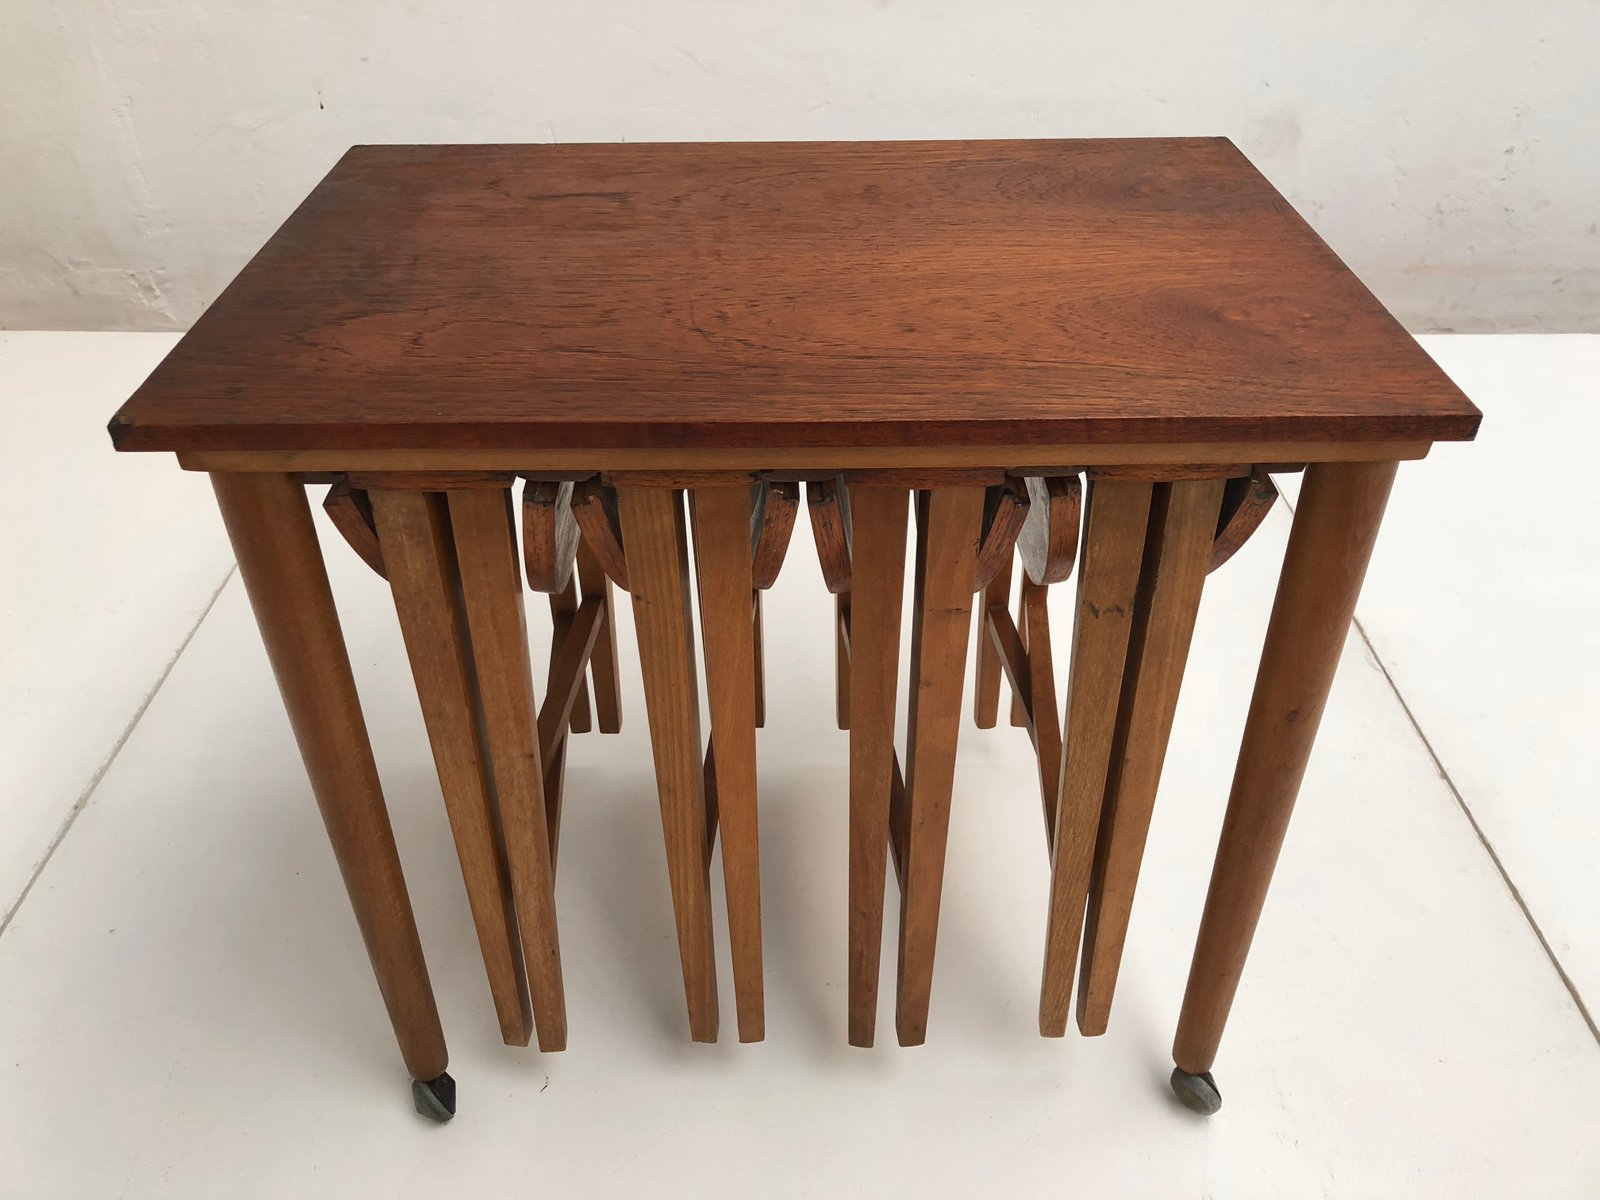 Danish Vintage Teak Drop Leaf Nesting Tables 1960s 19 736 00